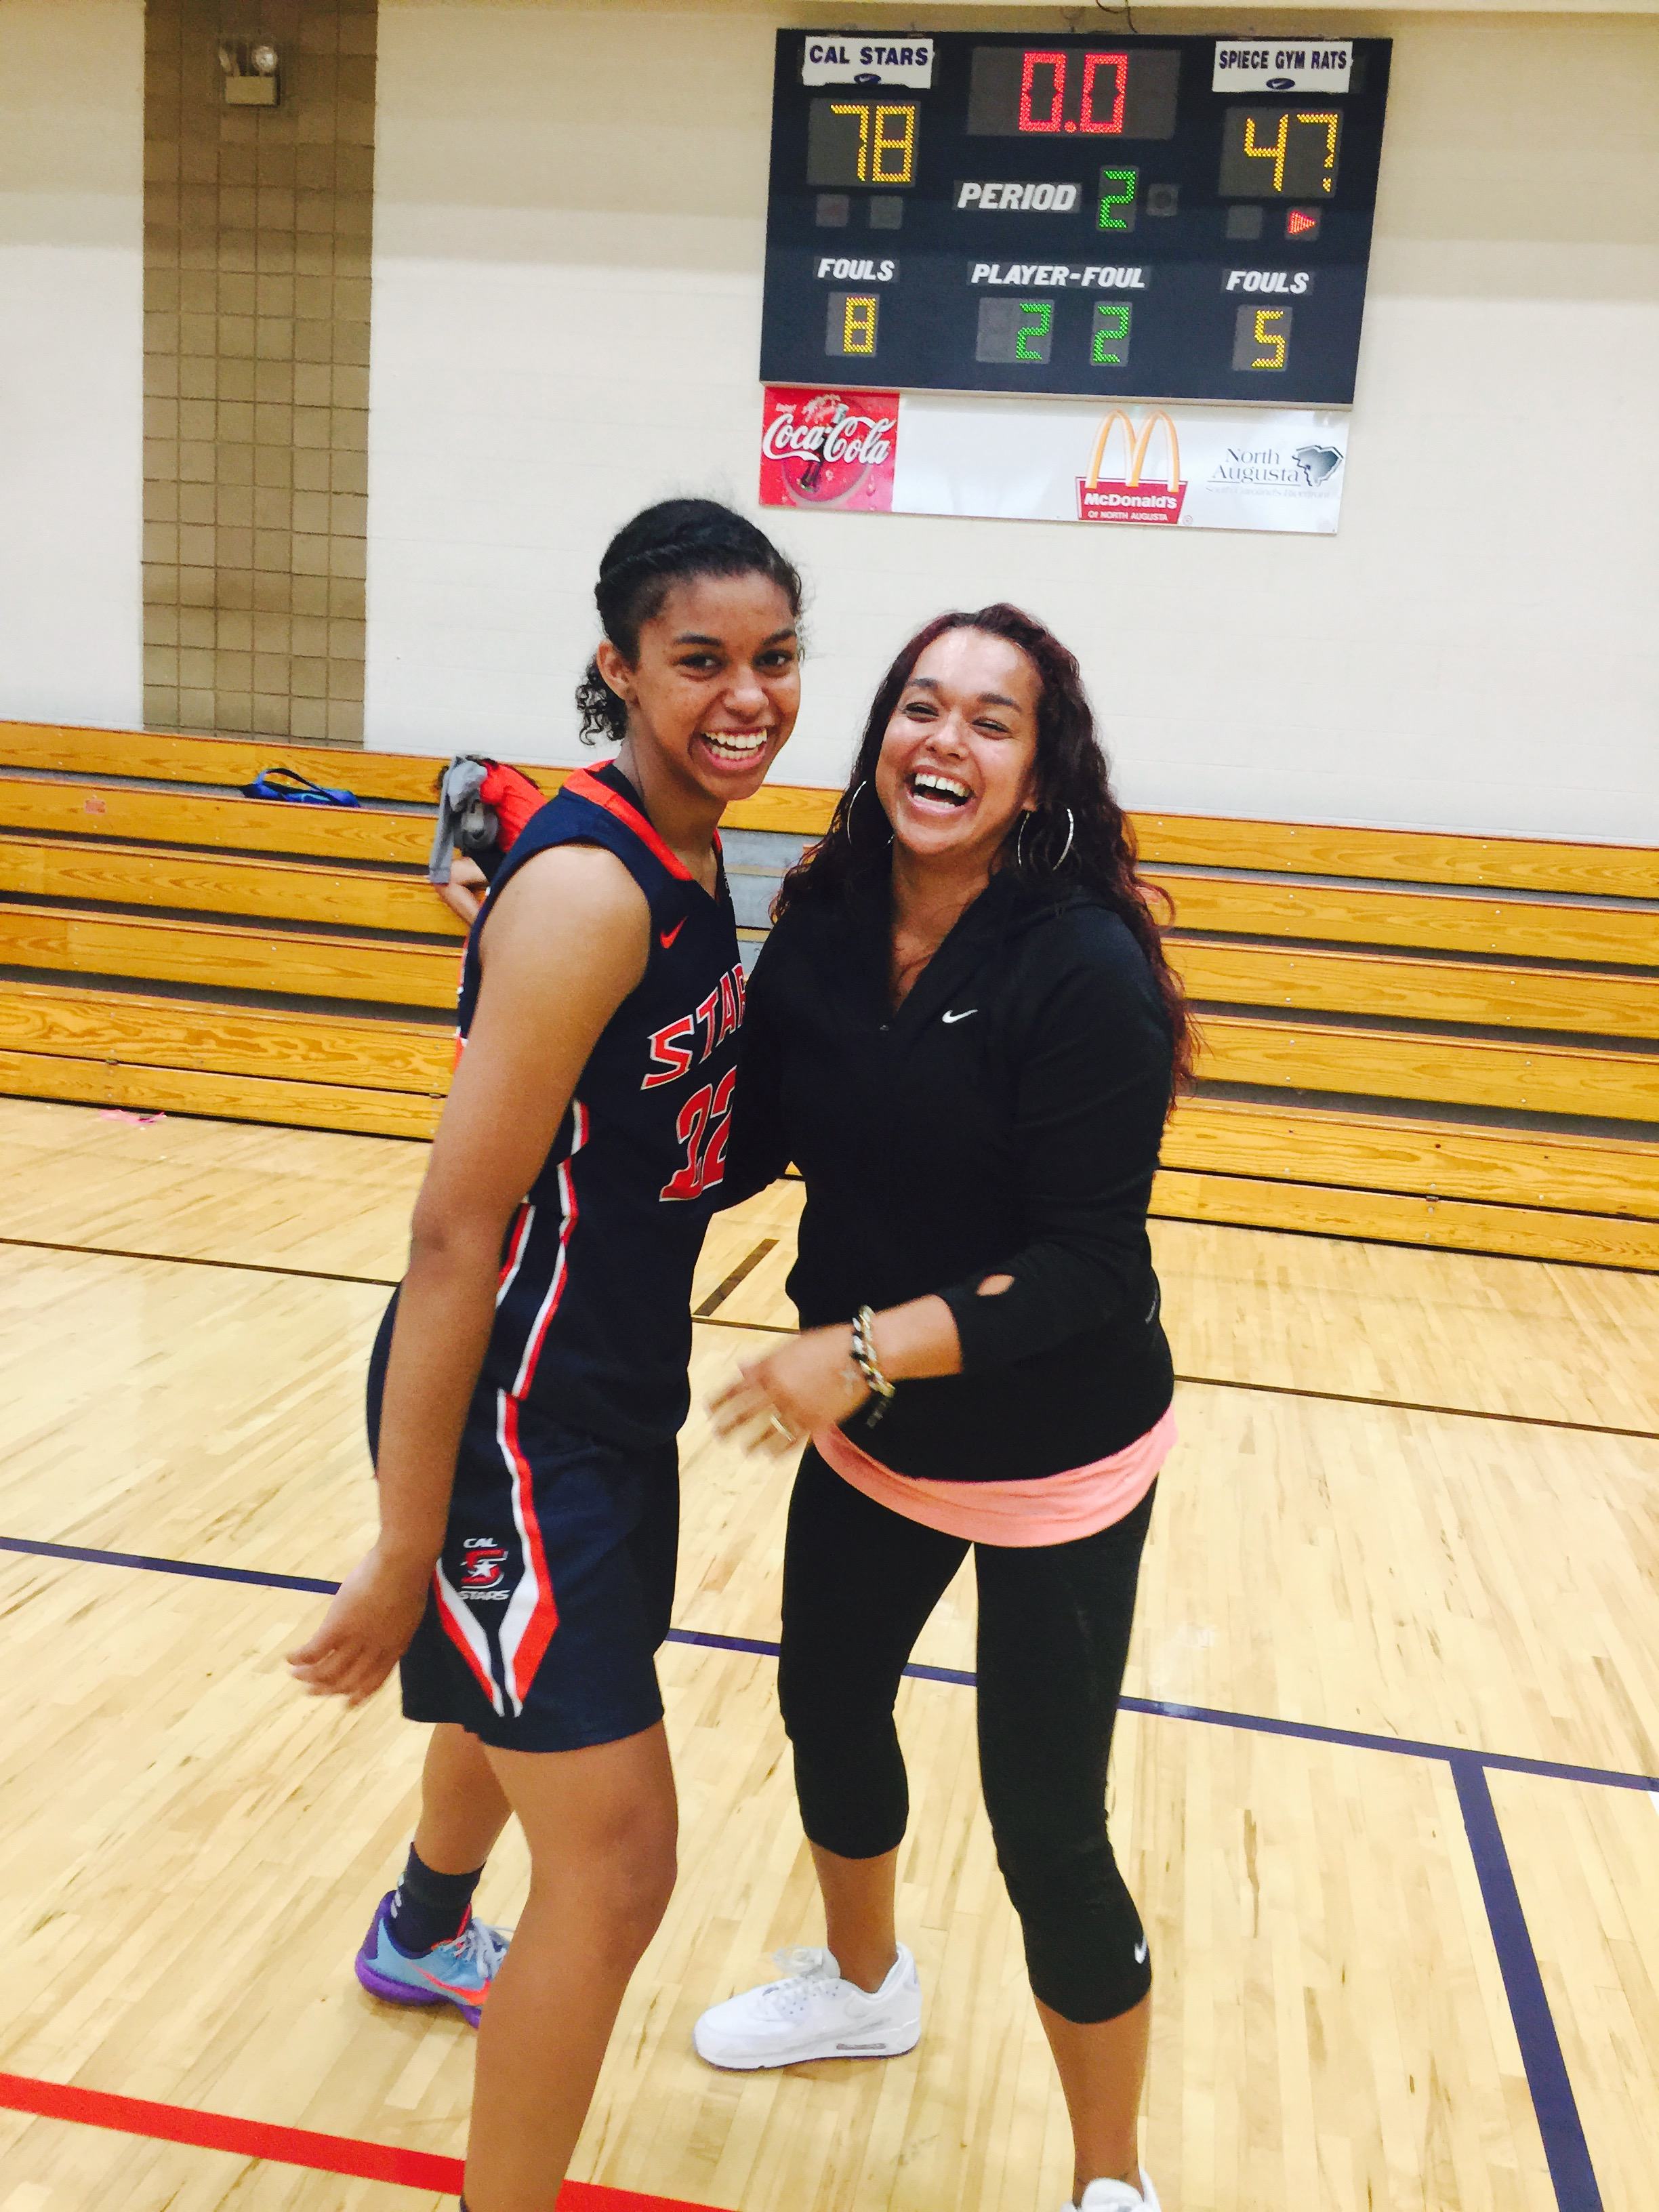 Evina Westbrook #22 and her mom, Eva, celebrating a win.